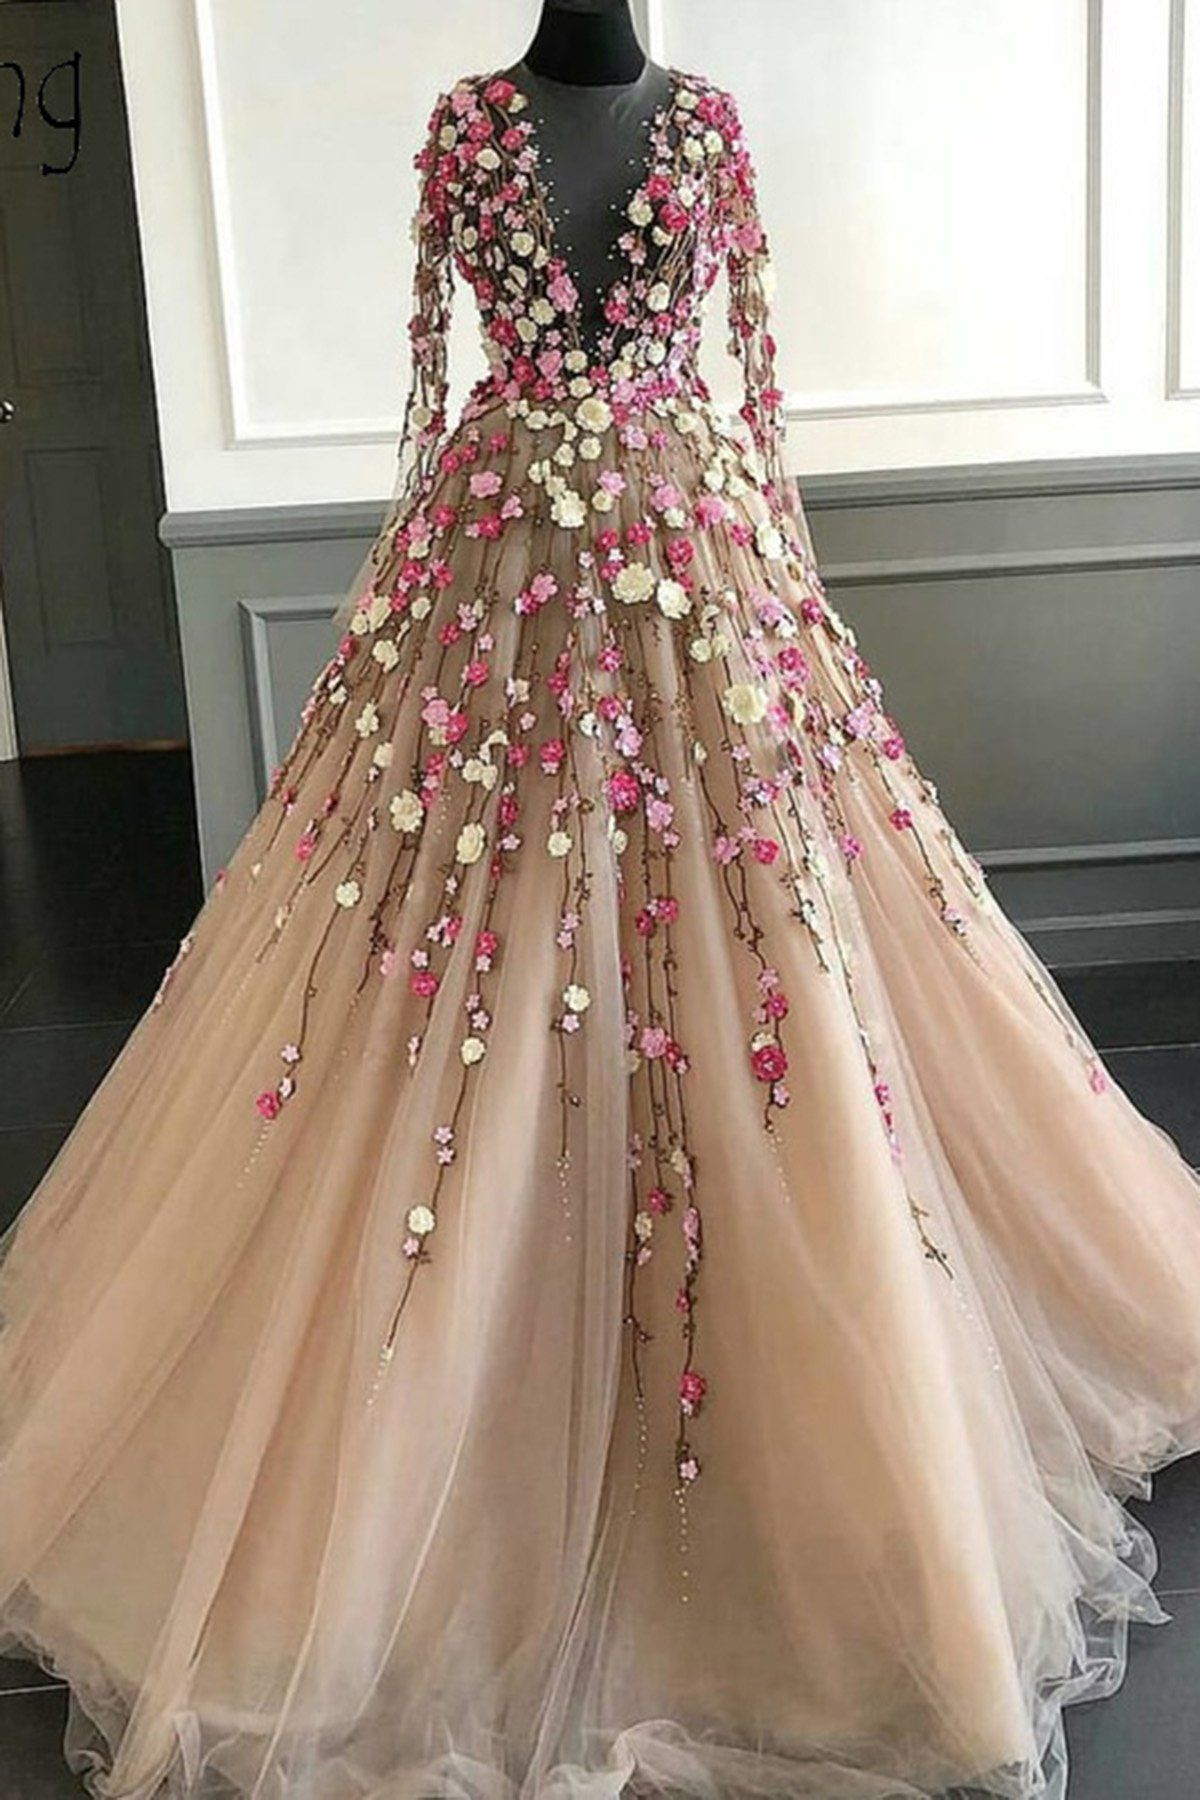 Champagne Tulle 3d Flower Lace Applique Long Senior Prom Dress With Long Sleeve Senior Prom Dresses Floral Prom Dresses Prom Dresses [ 1800 x 1200 Pixel ]